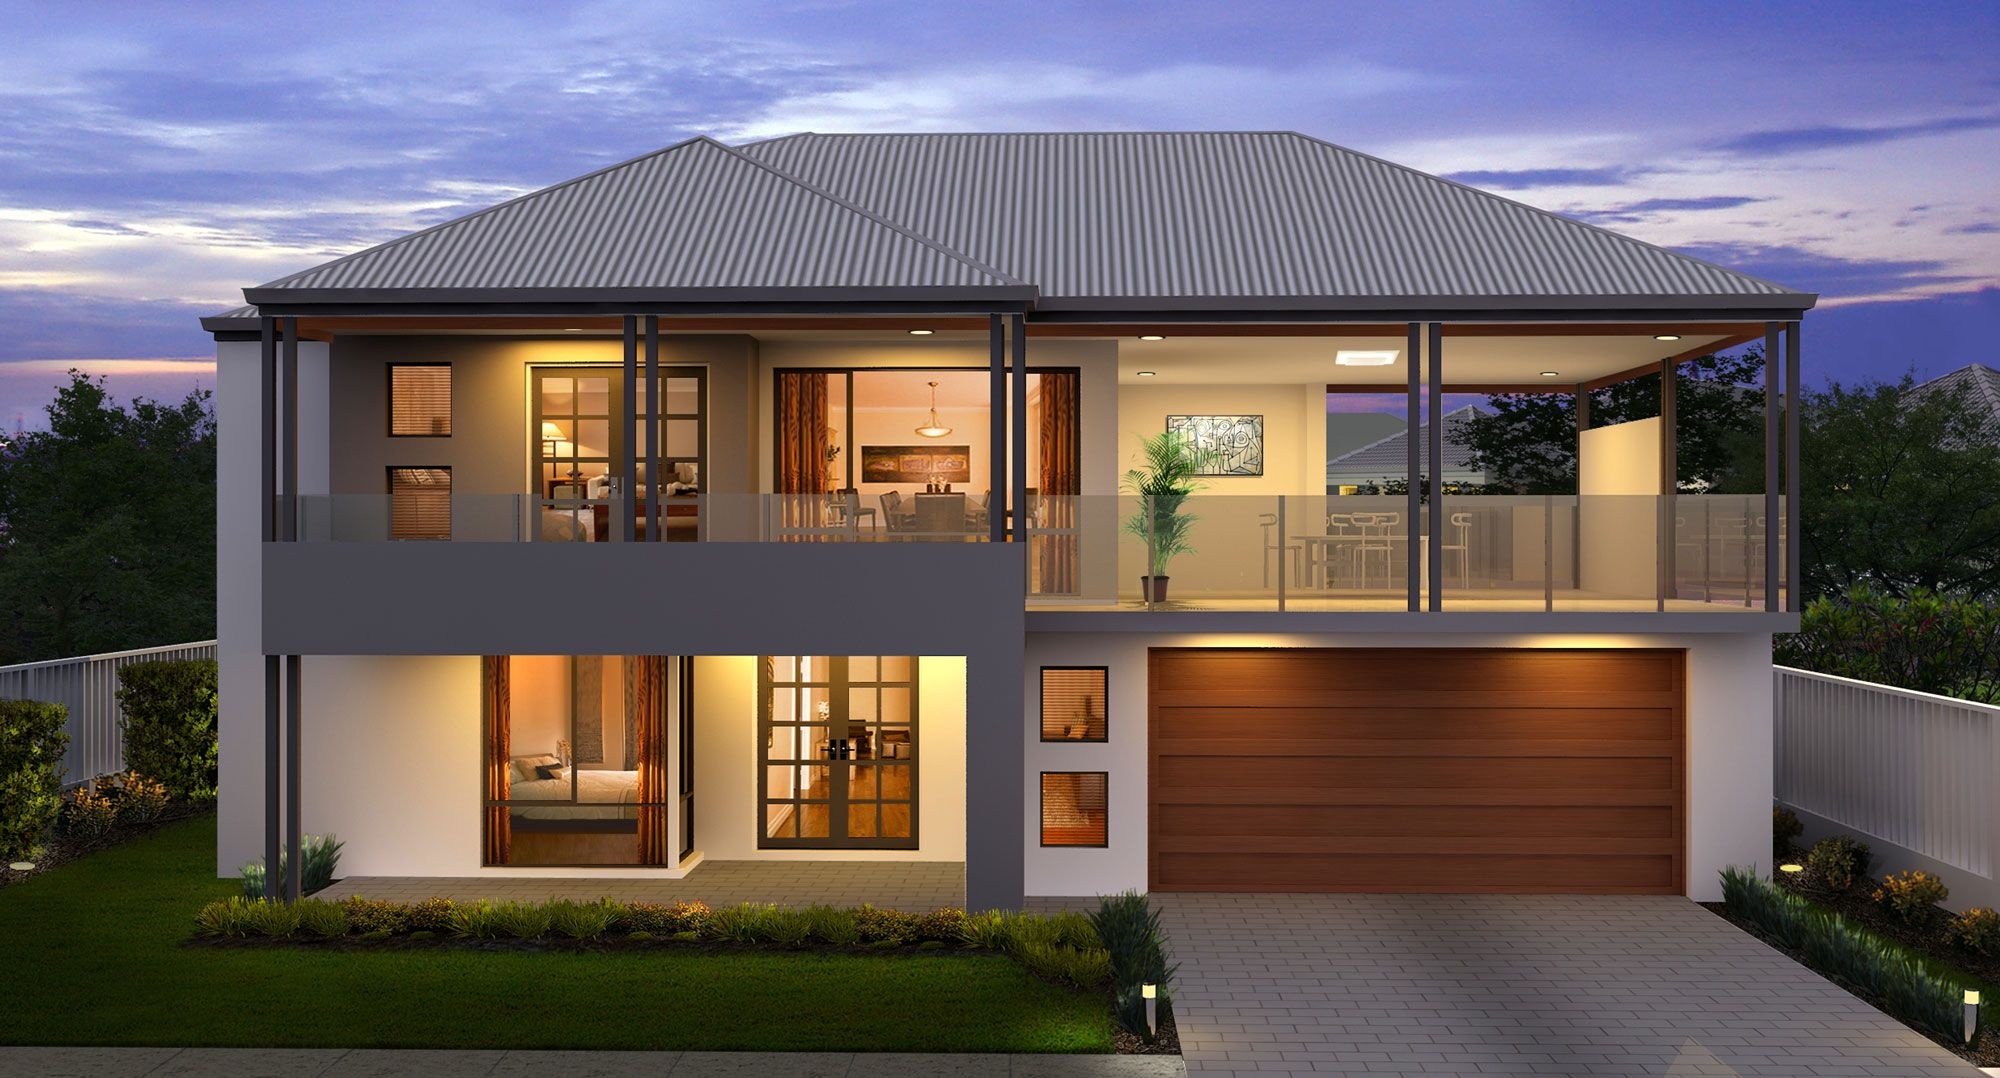 Two Storey Home Builders Mandurah Perth Great Living Homes Two Story House Design House Roof Design Facade House